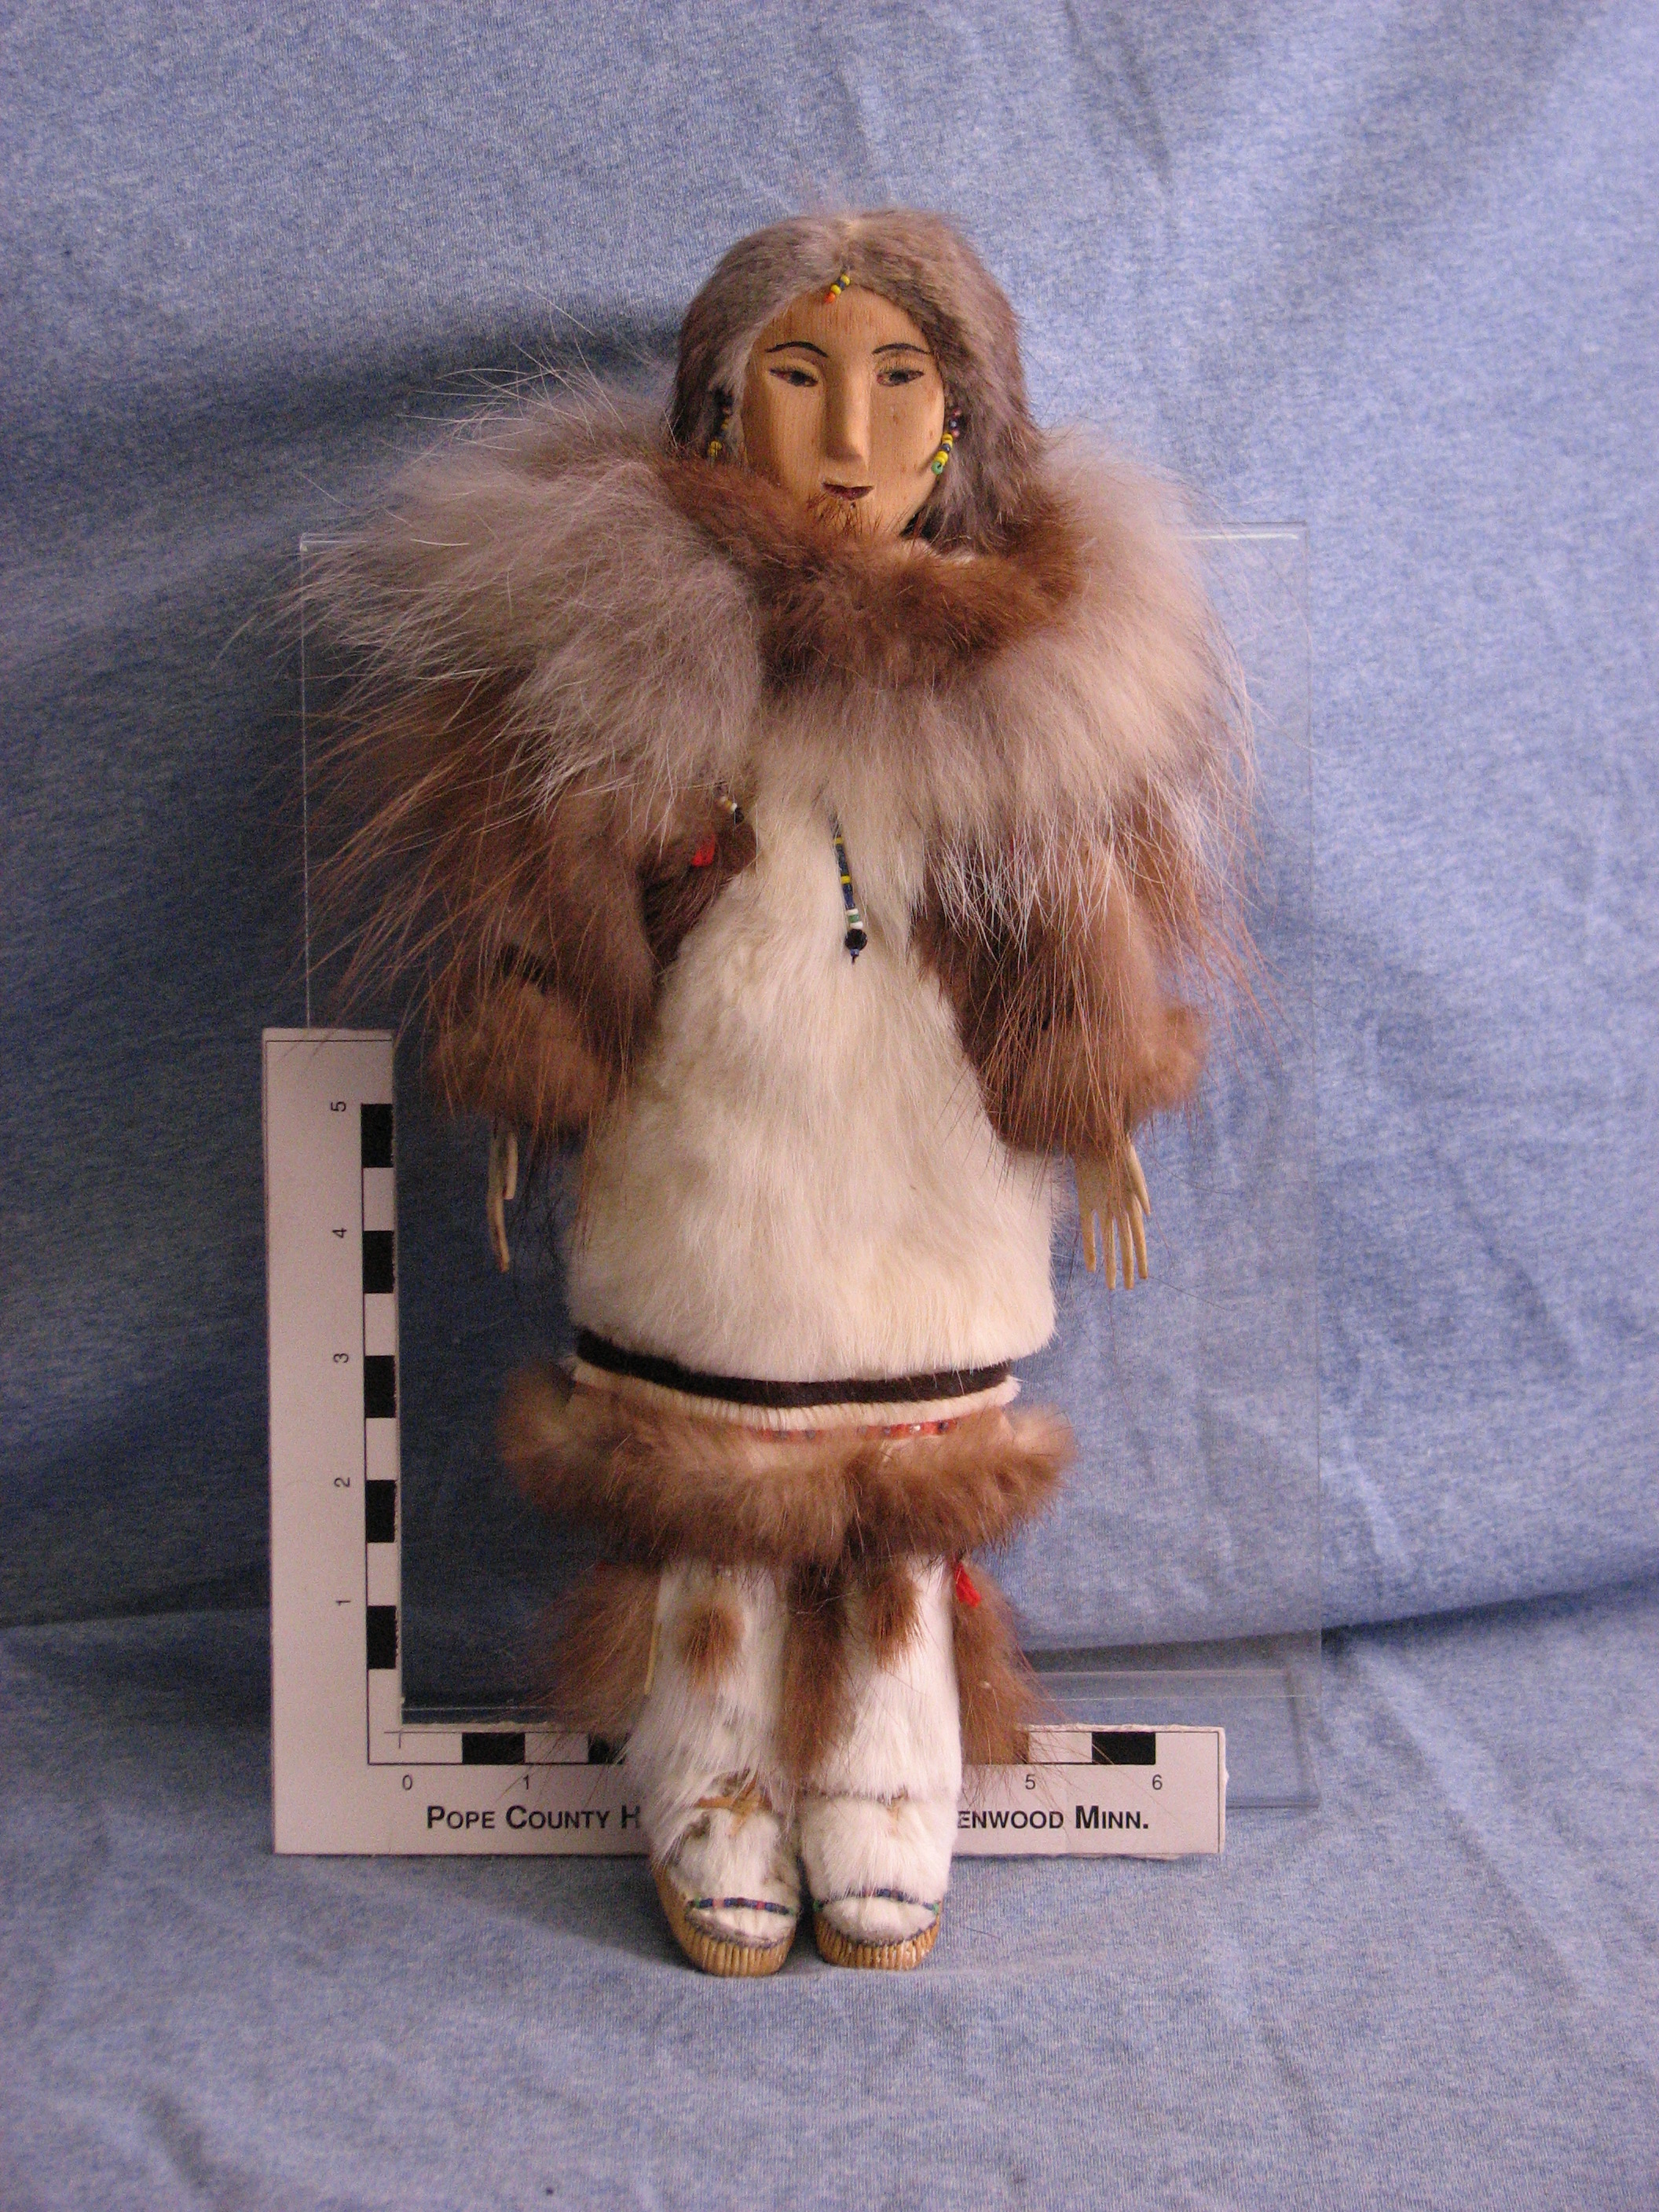 is part of the cleora helbing native american arts and crafts exhibit